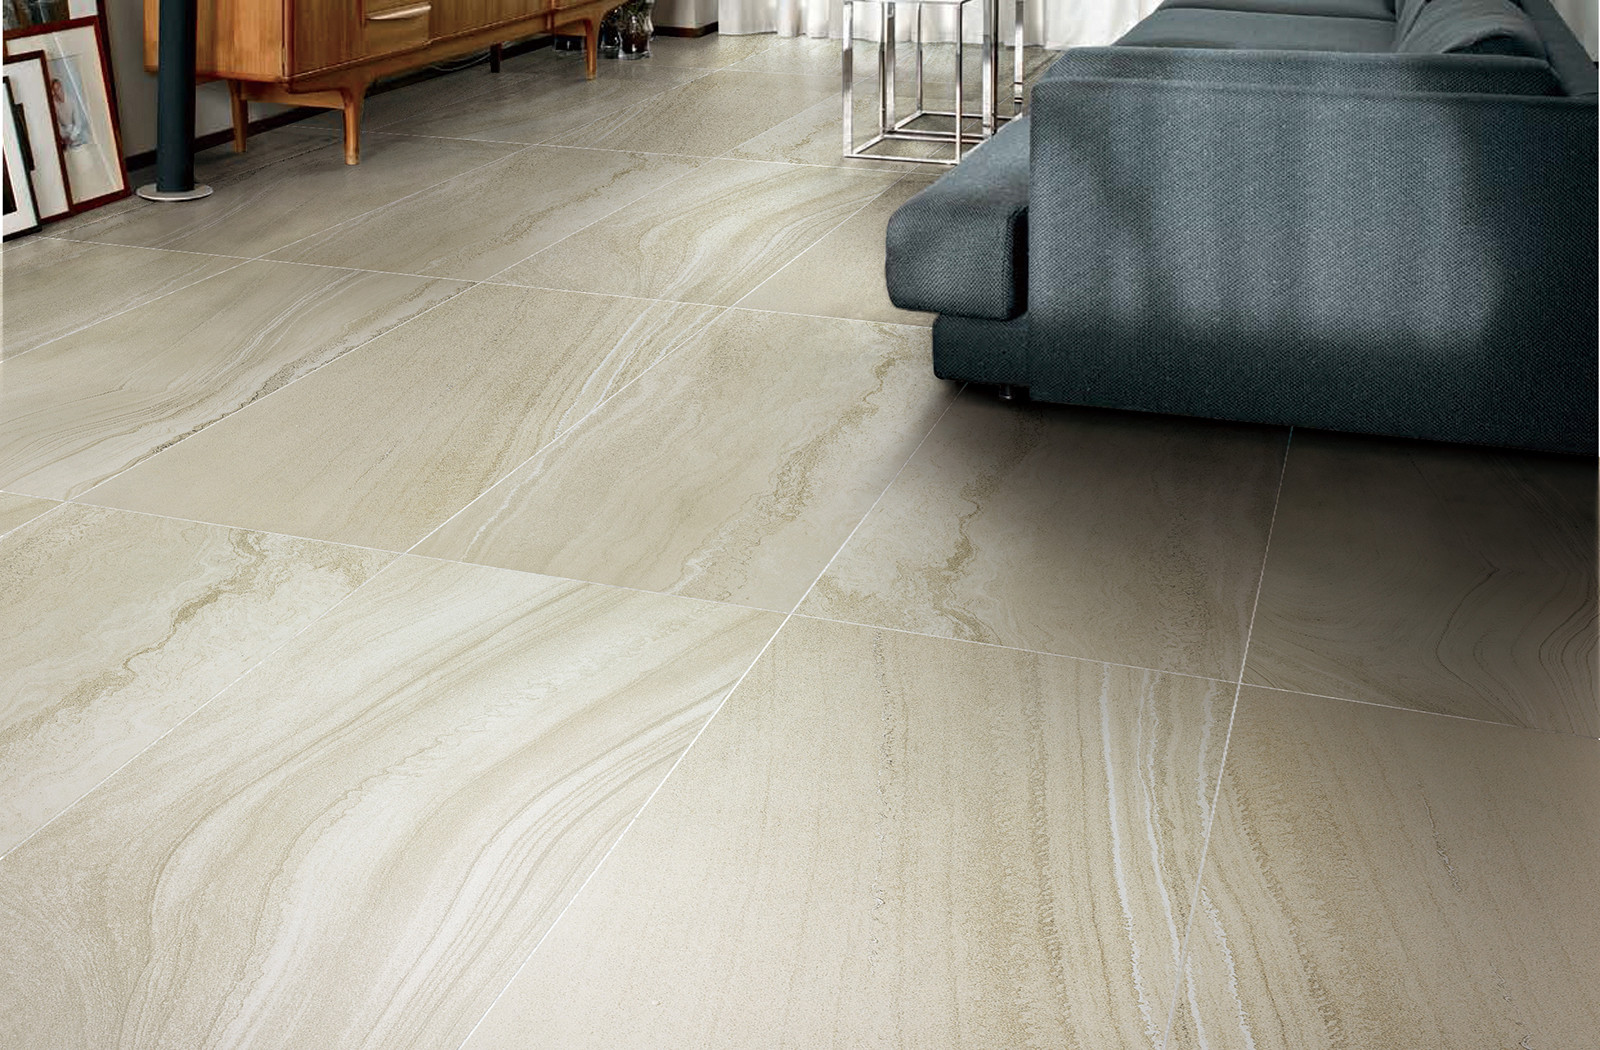 grey hardwood floors canada of interlock glass marble decors series glass olympia tile intended for sahara3